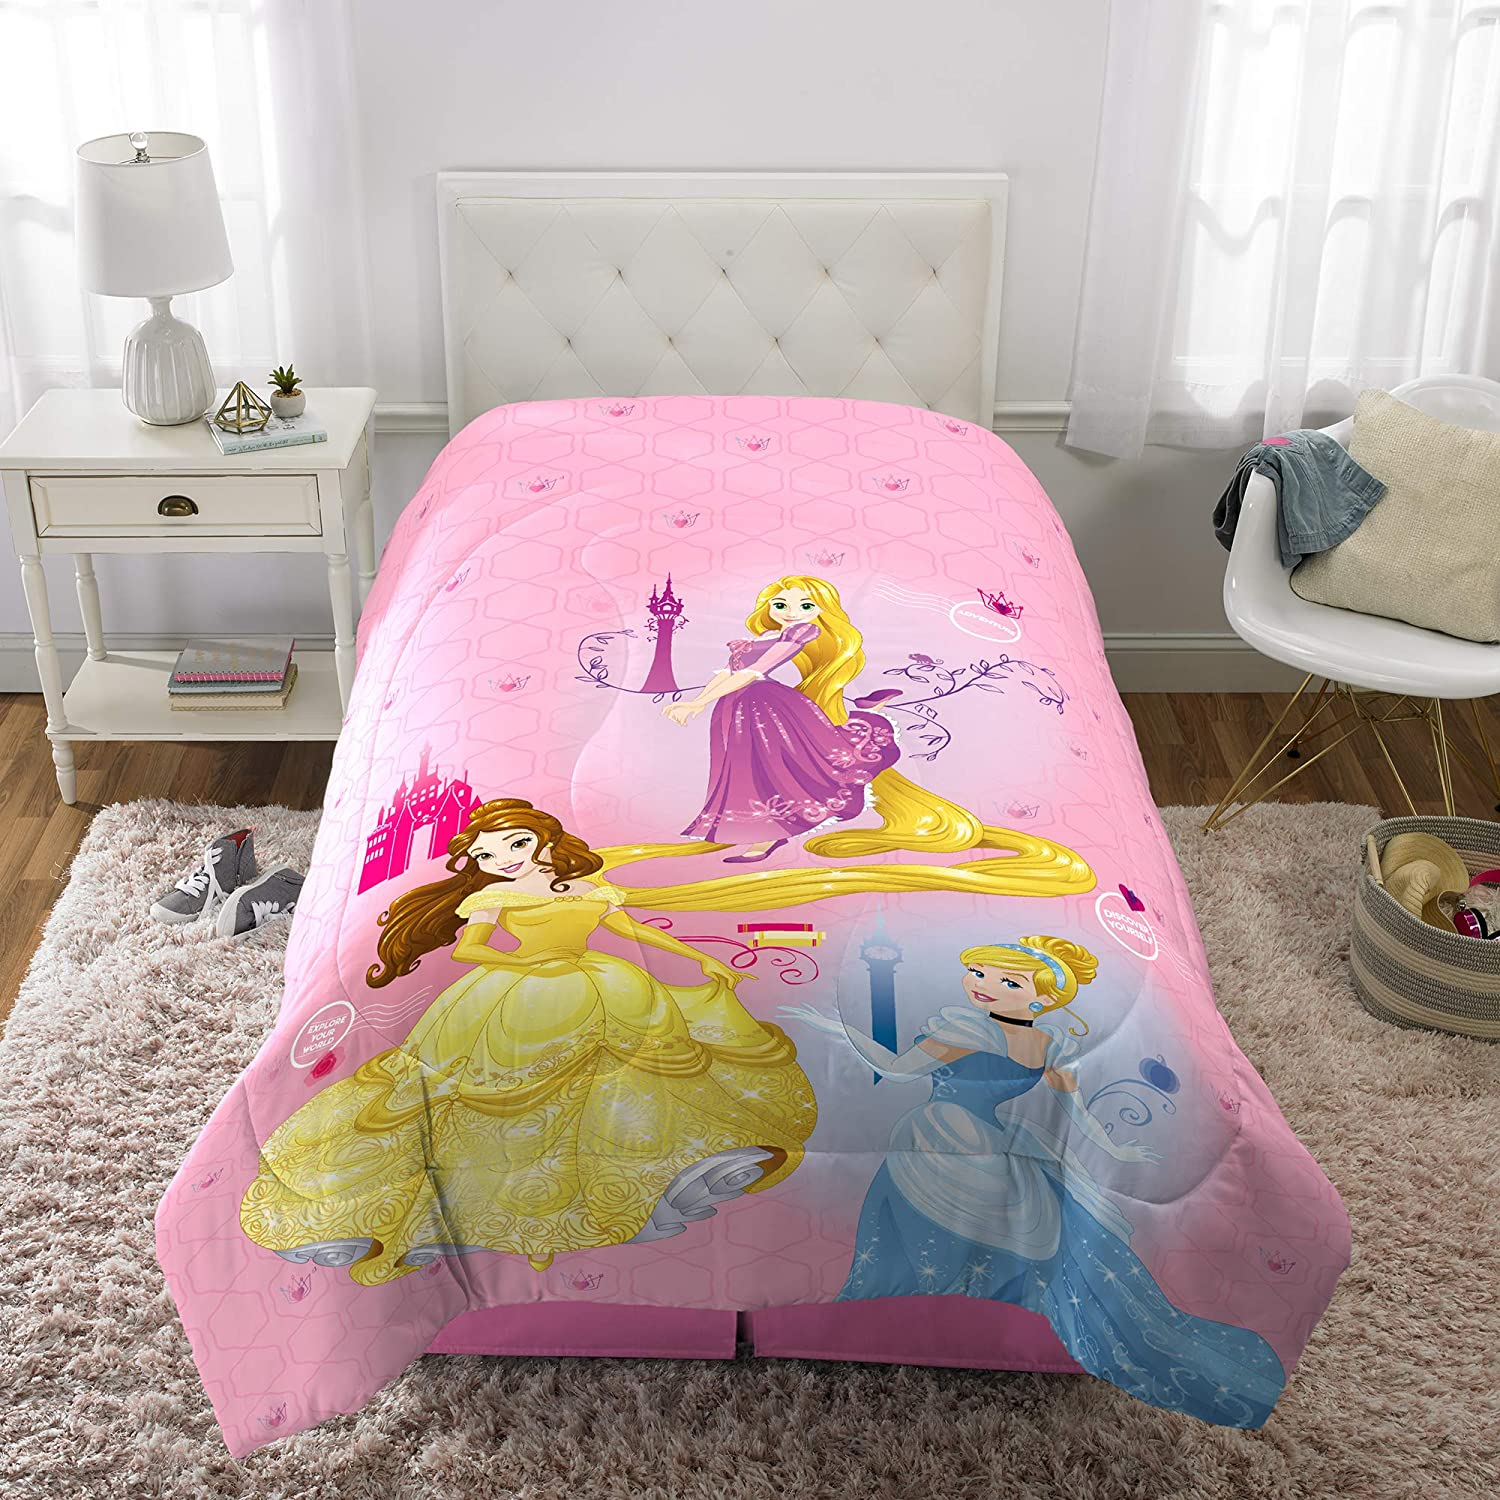 "Franco Kids Bedding Super Soft Microfiber Reversible Comforter, Twin/Full Size 72"" x 86"", Disney Princess"